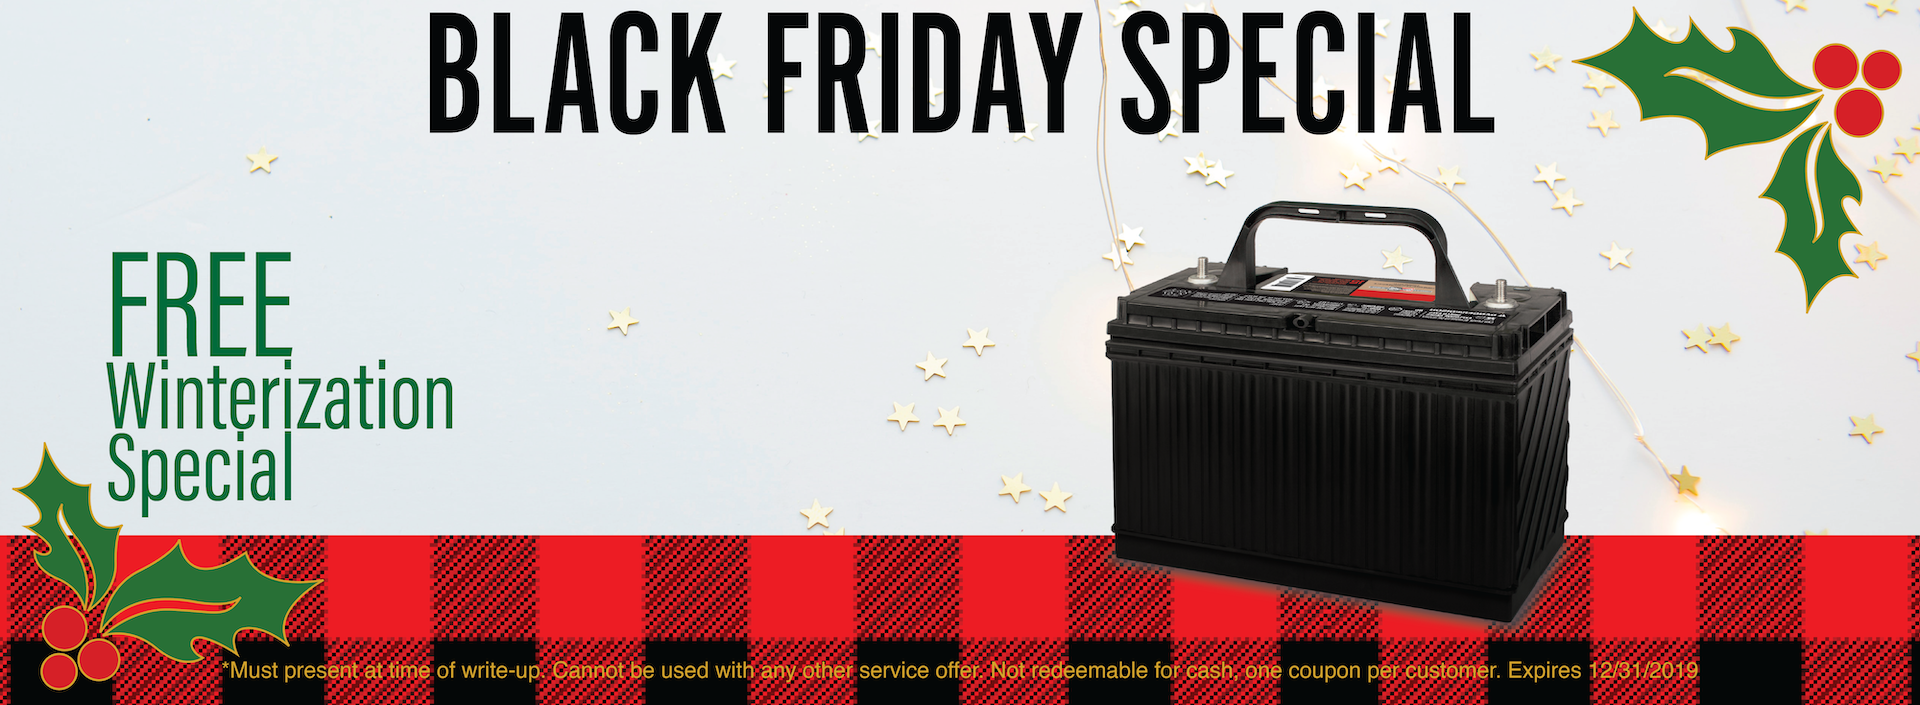 Black Friday Winterization Special